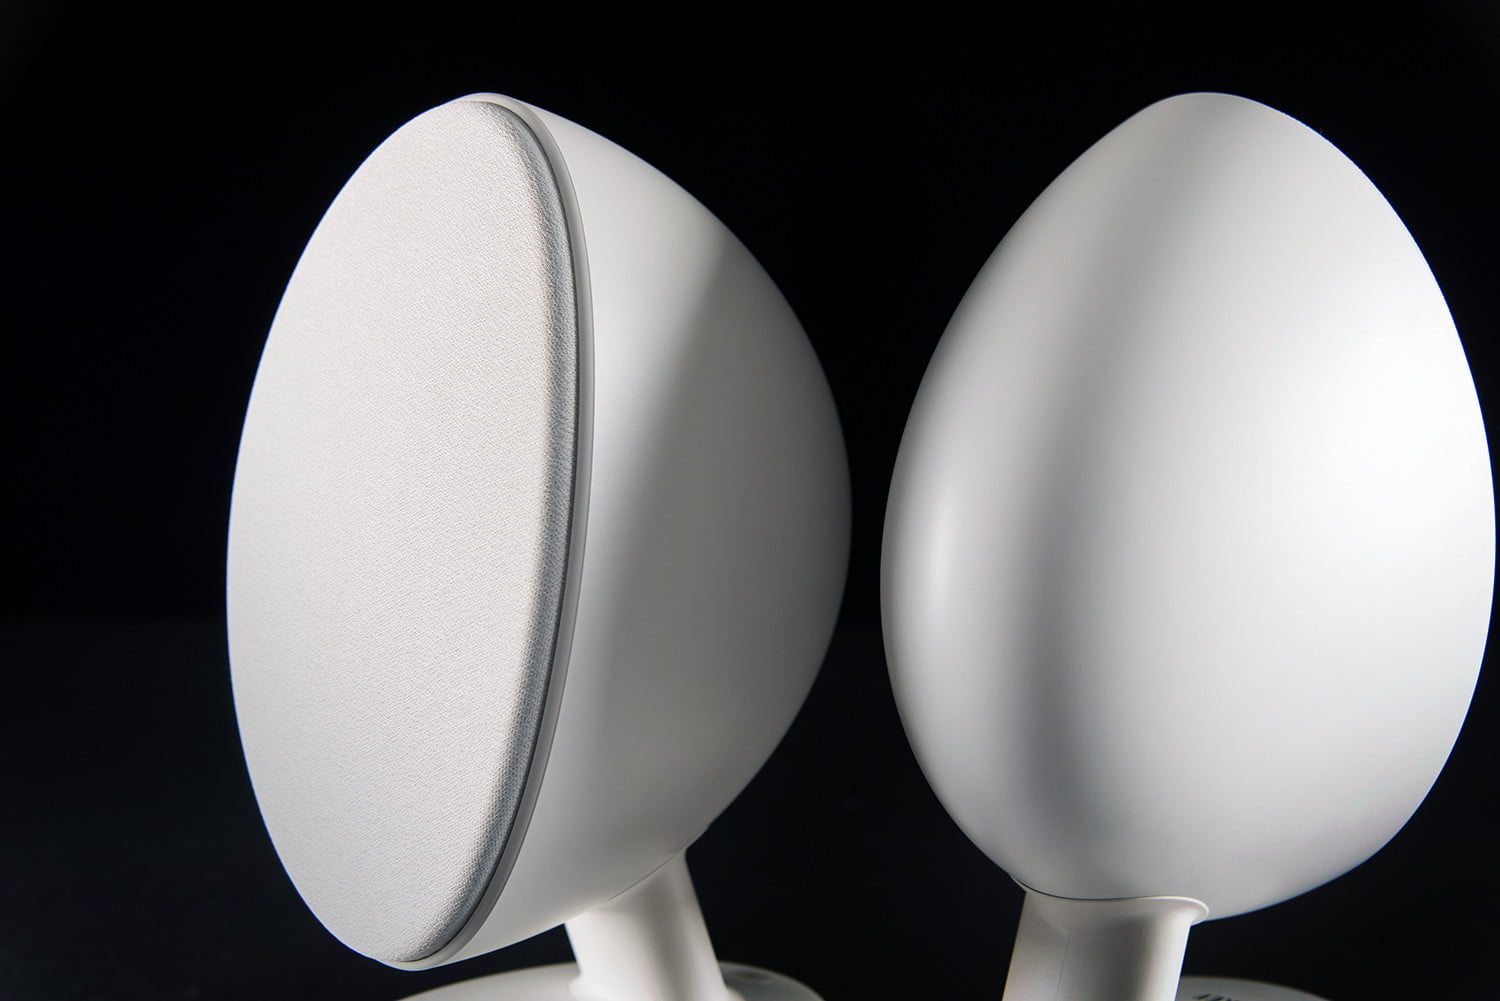 kef egg wireless digital music system. kef egg wireless digital music system kef egg l